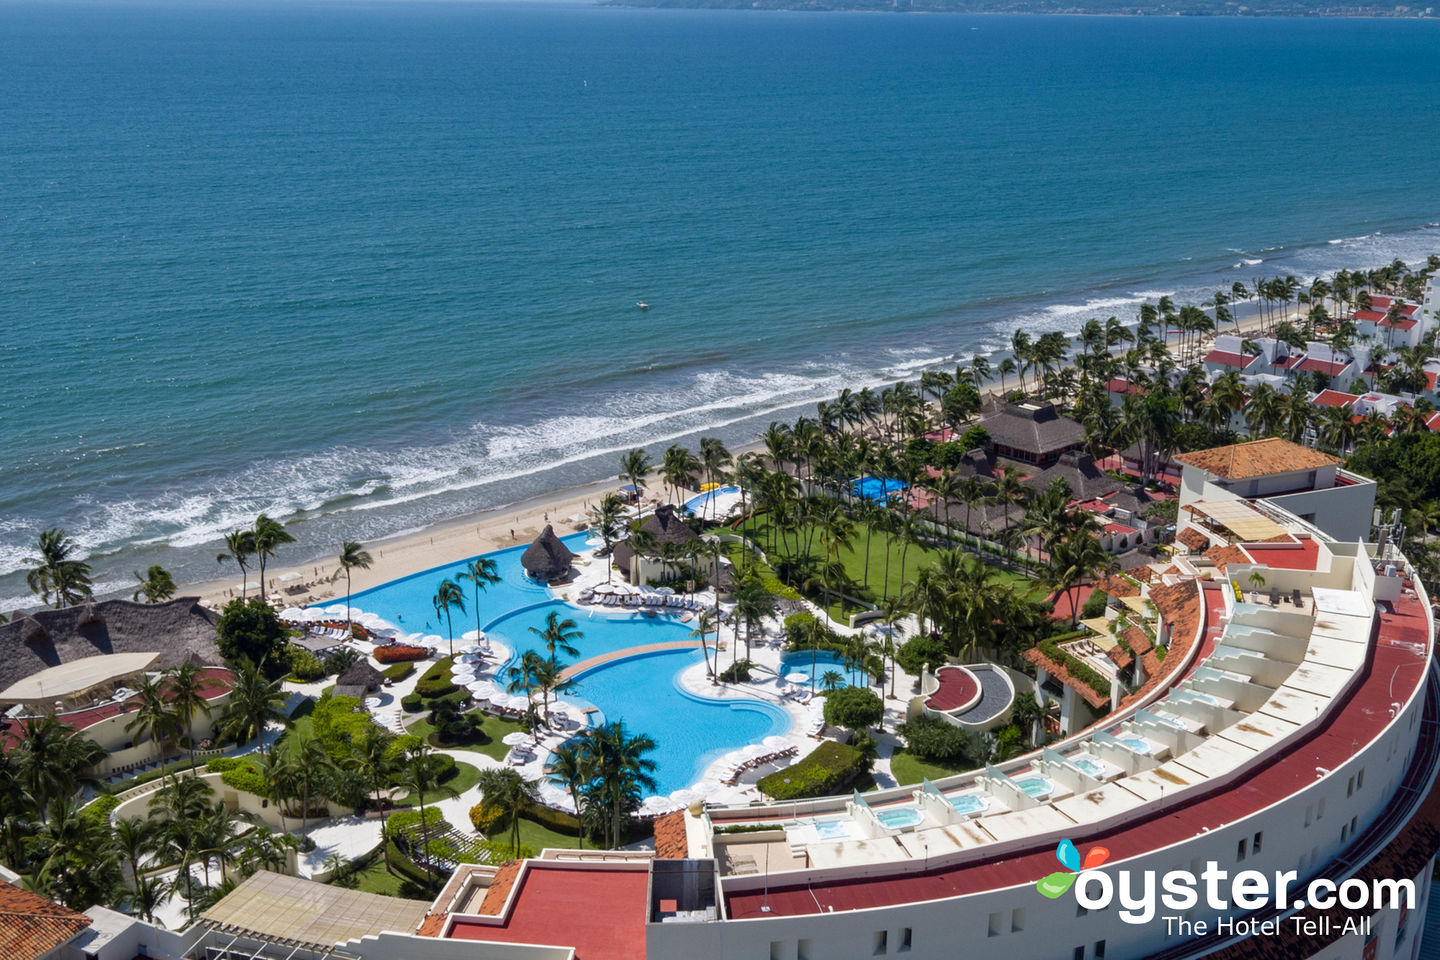 Aerial View of Grand Velas Riviera Nayarit/Oyster